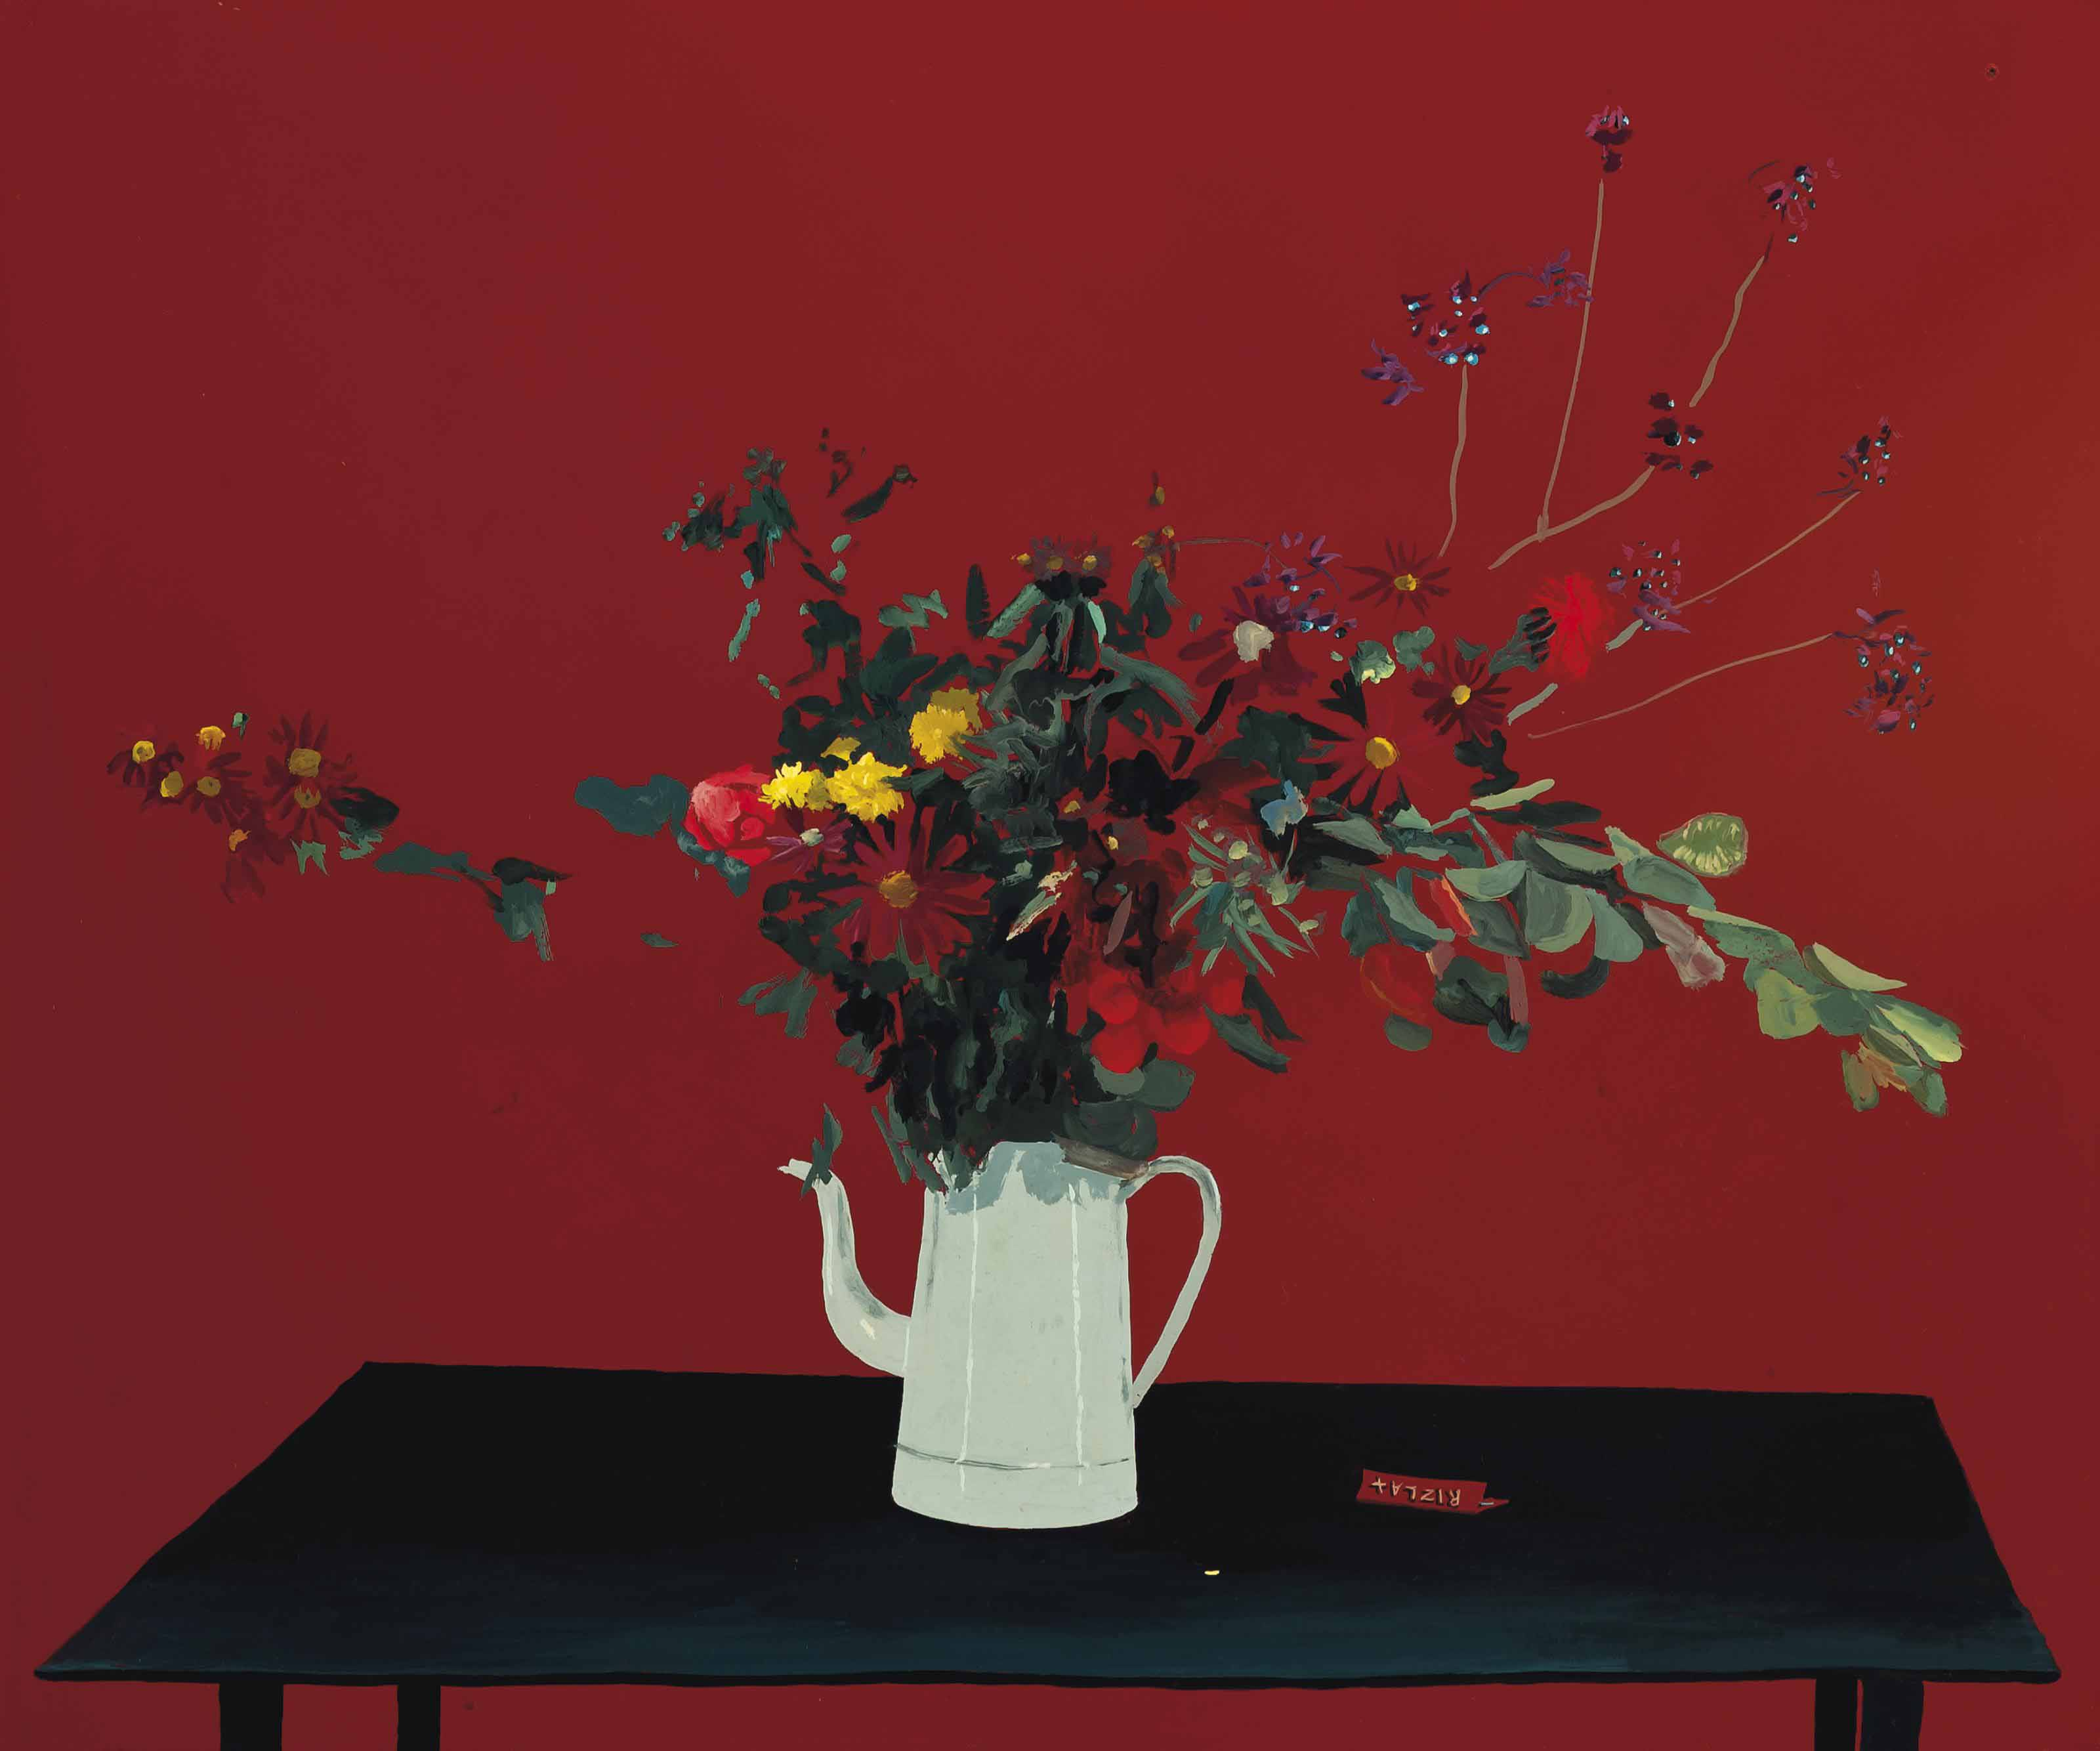 Still life with flowers in a jug, on a table top